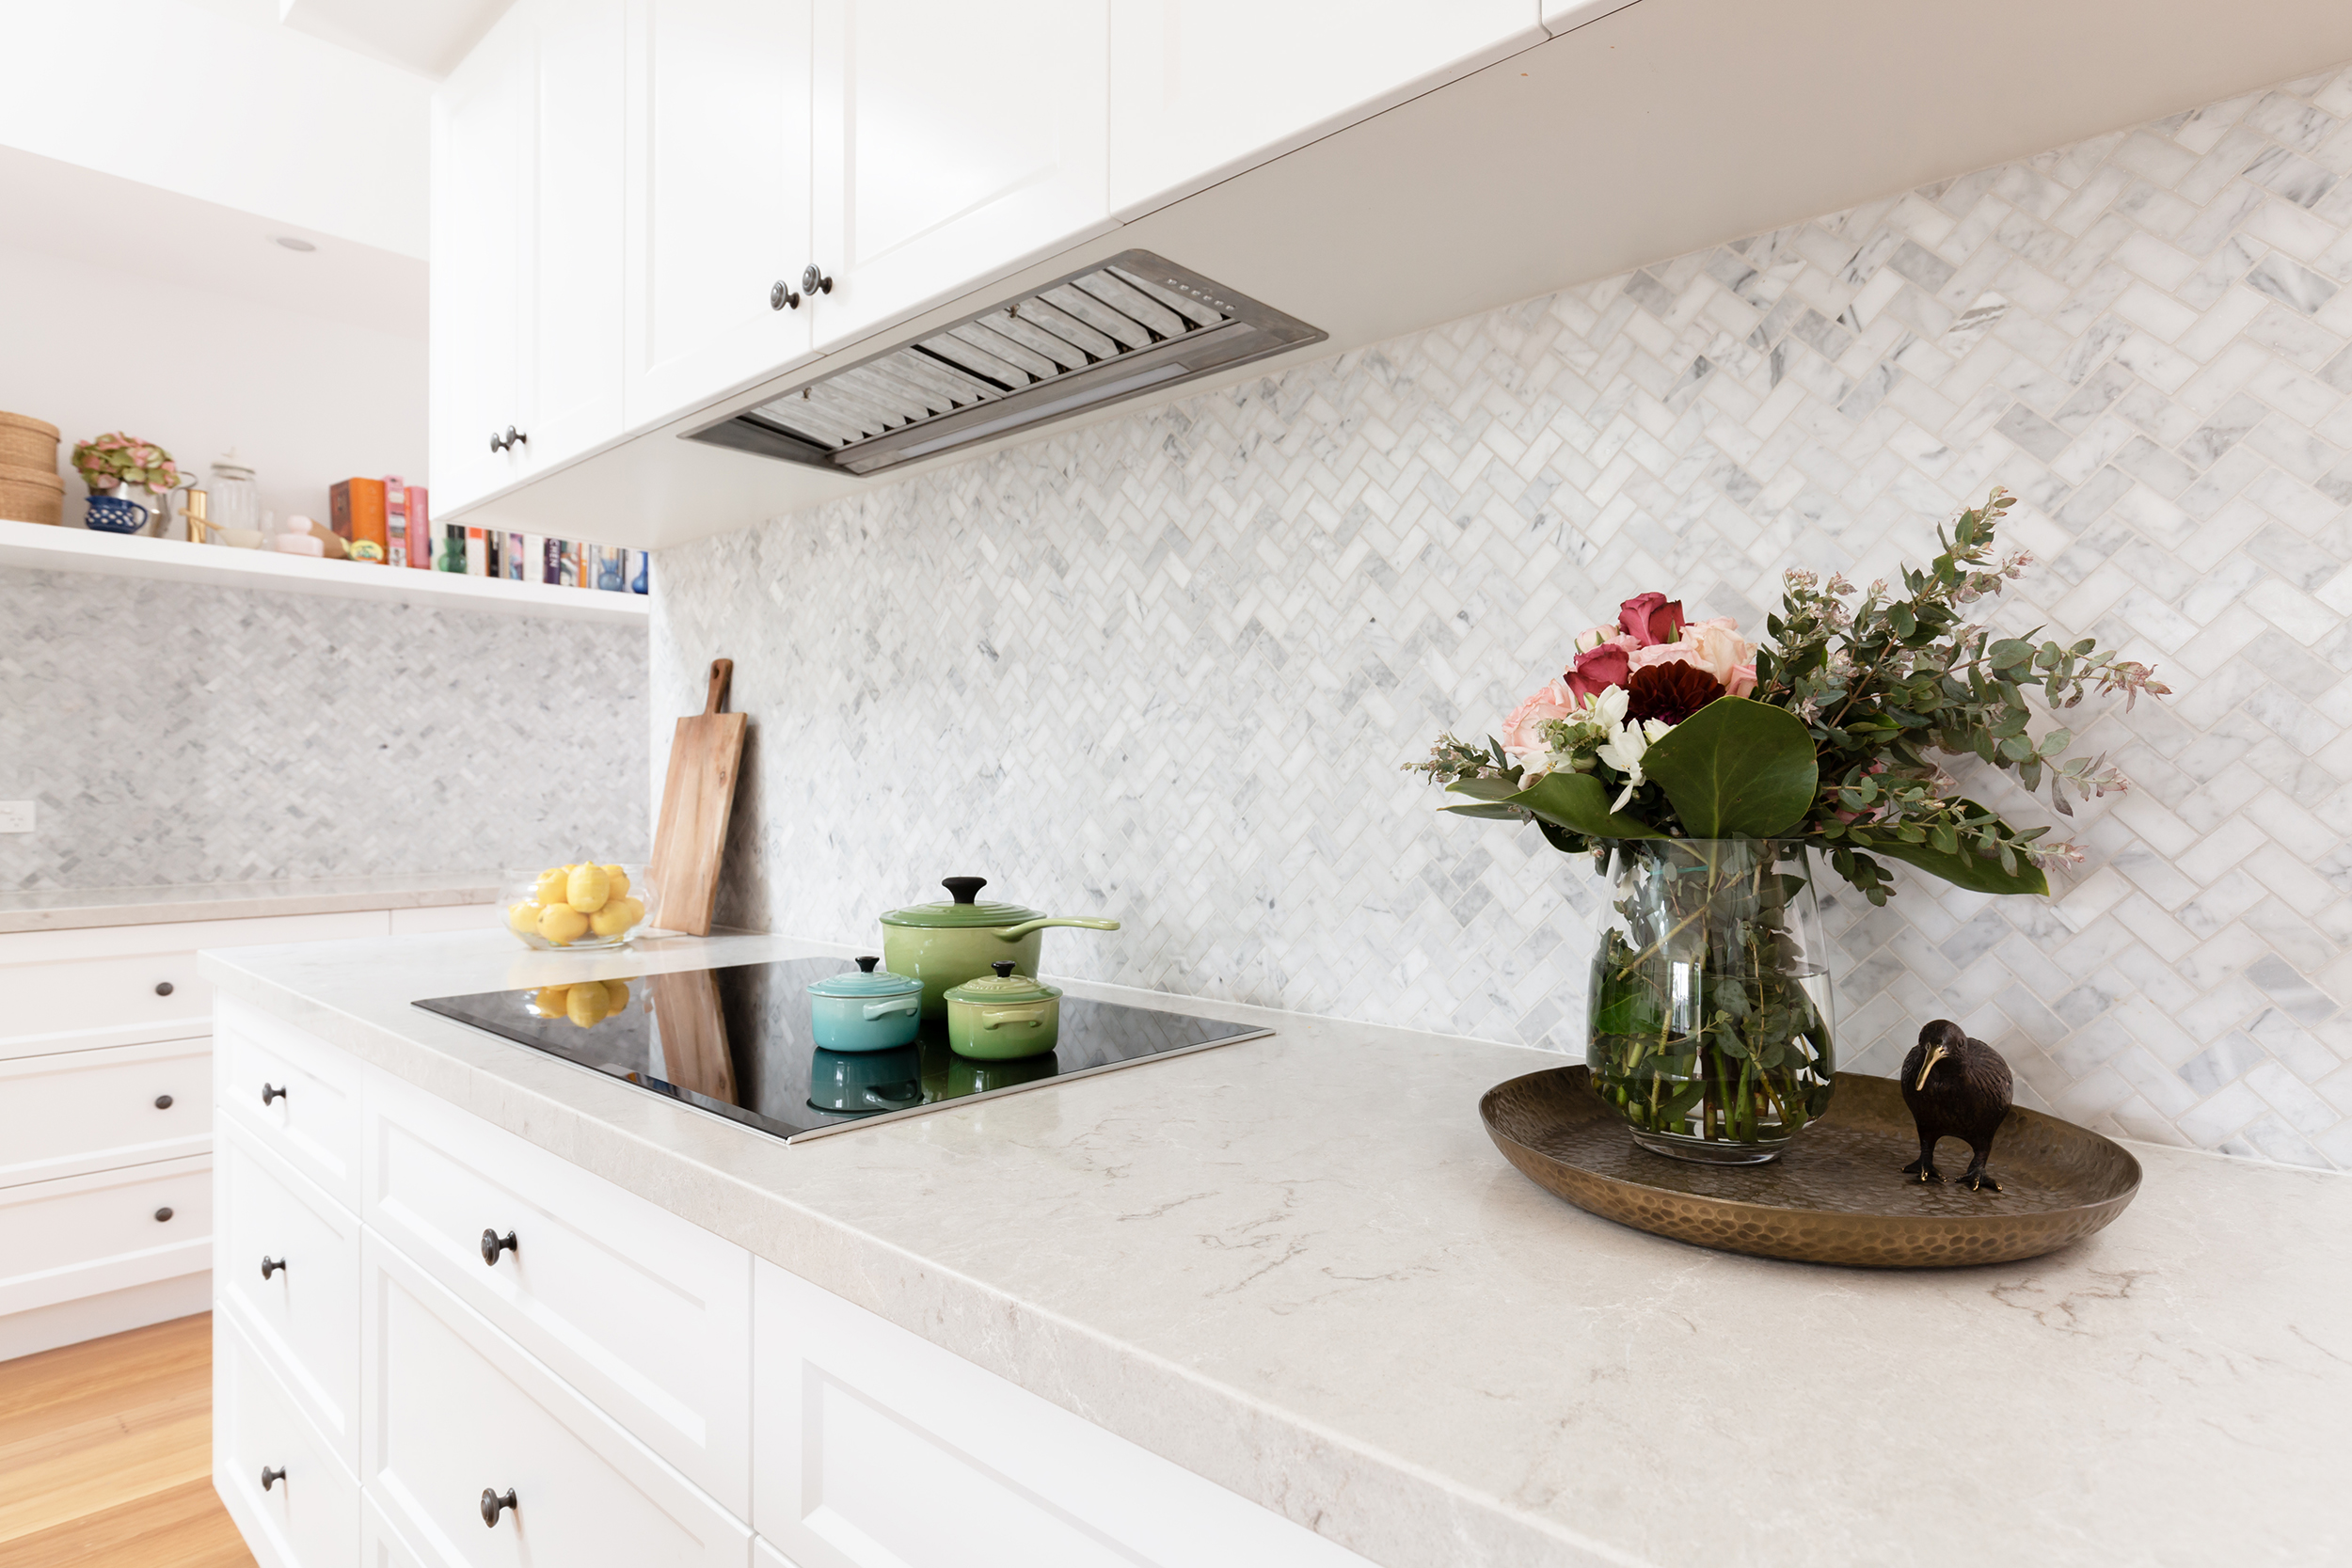 How To Fix Cracks In Every Kind Of Countertop